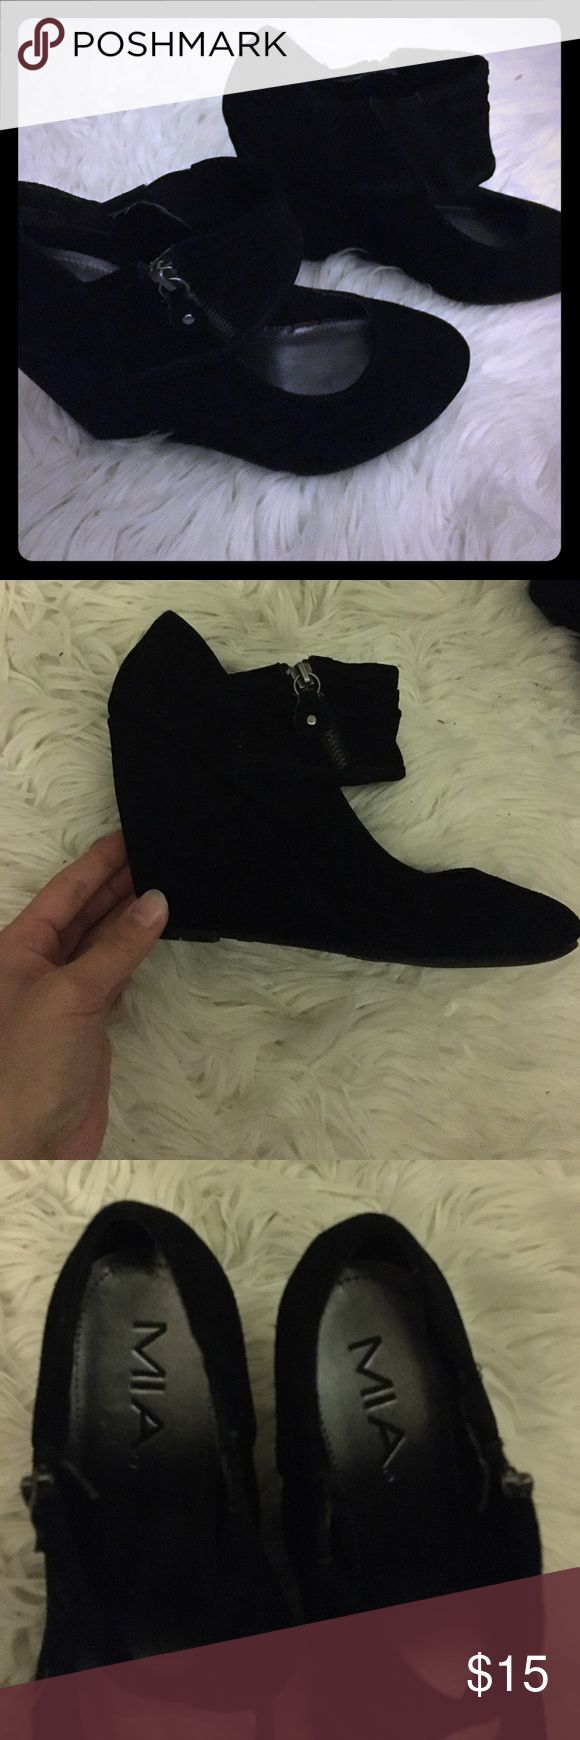 """MIA Greta Suede Wedge pumps sz7 MIA brand Greta suede wedged pumps. Comfy and looks great with tights. worn indoors only. Heel size about 3 1/2"""". MIA Shoes Wedges"""